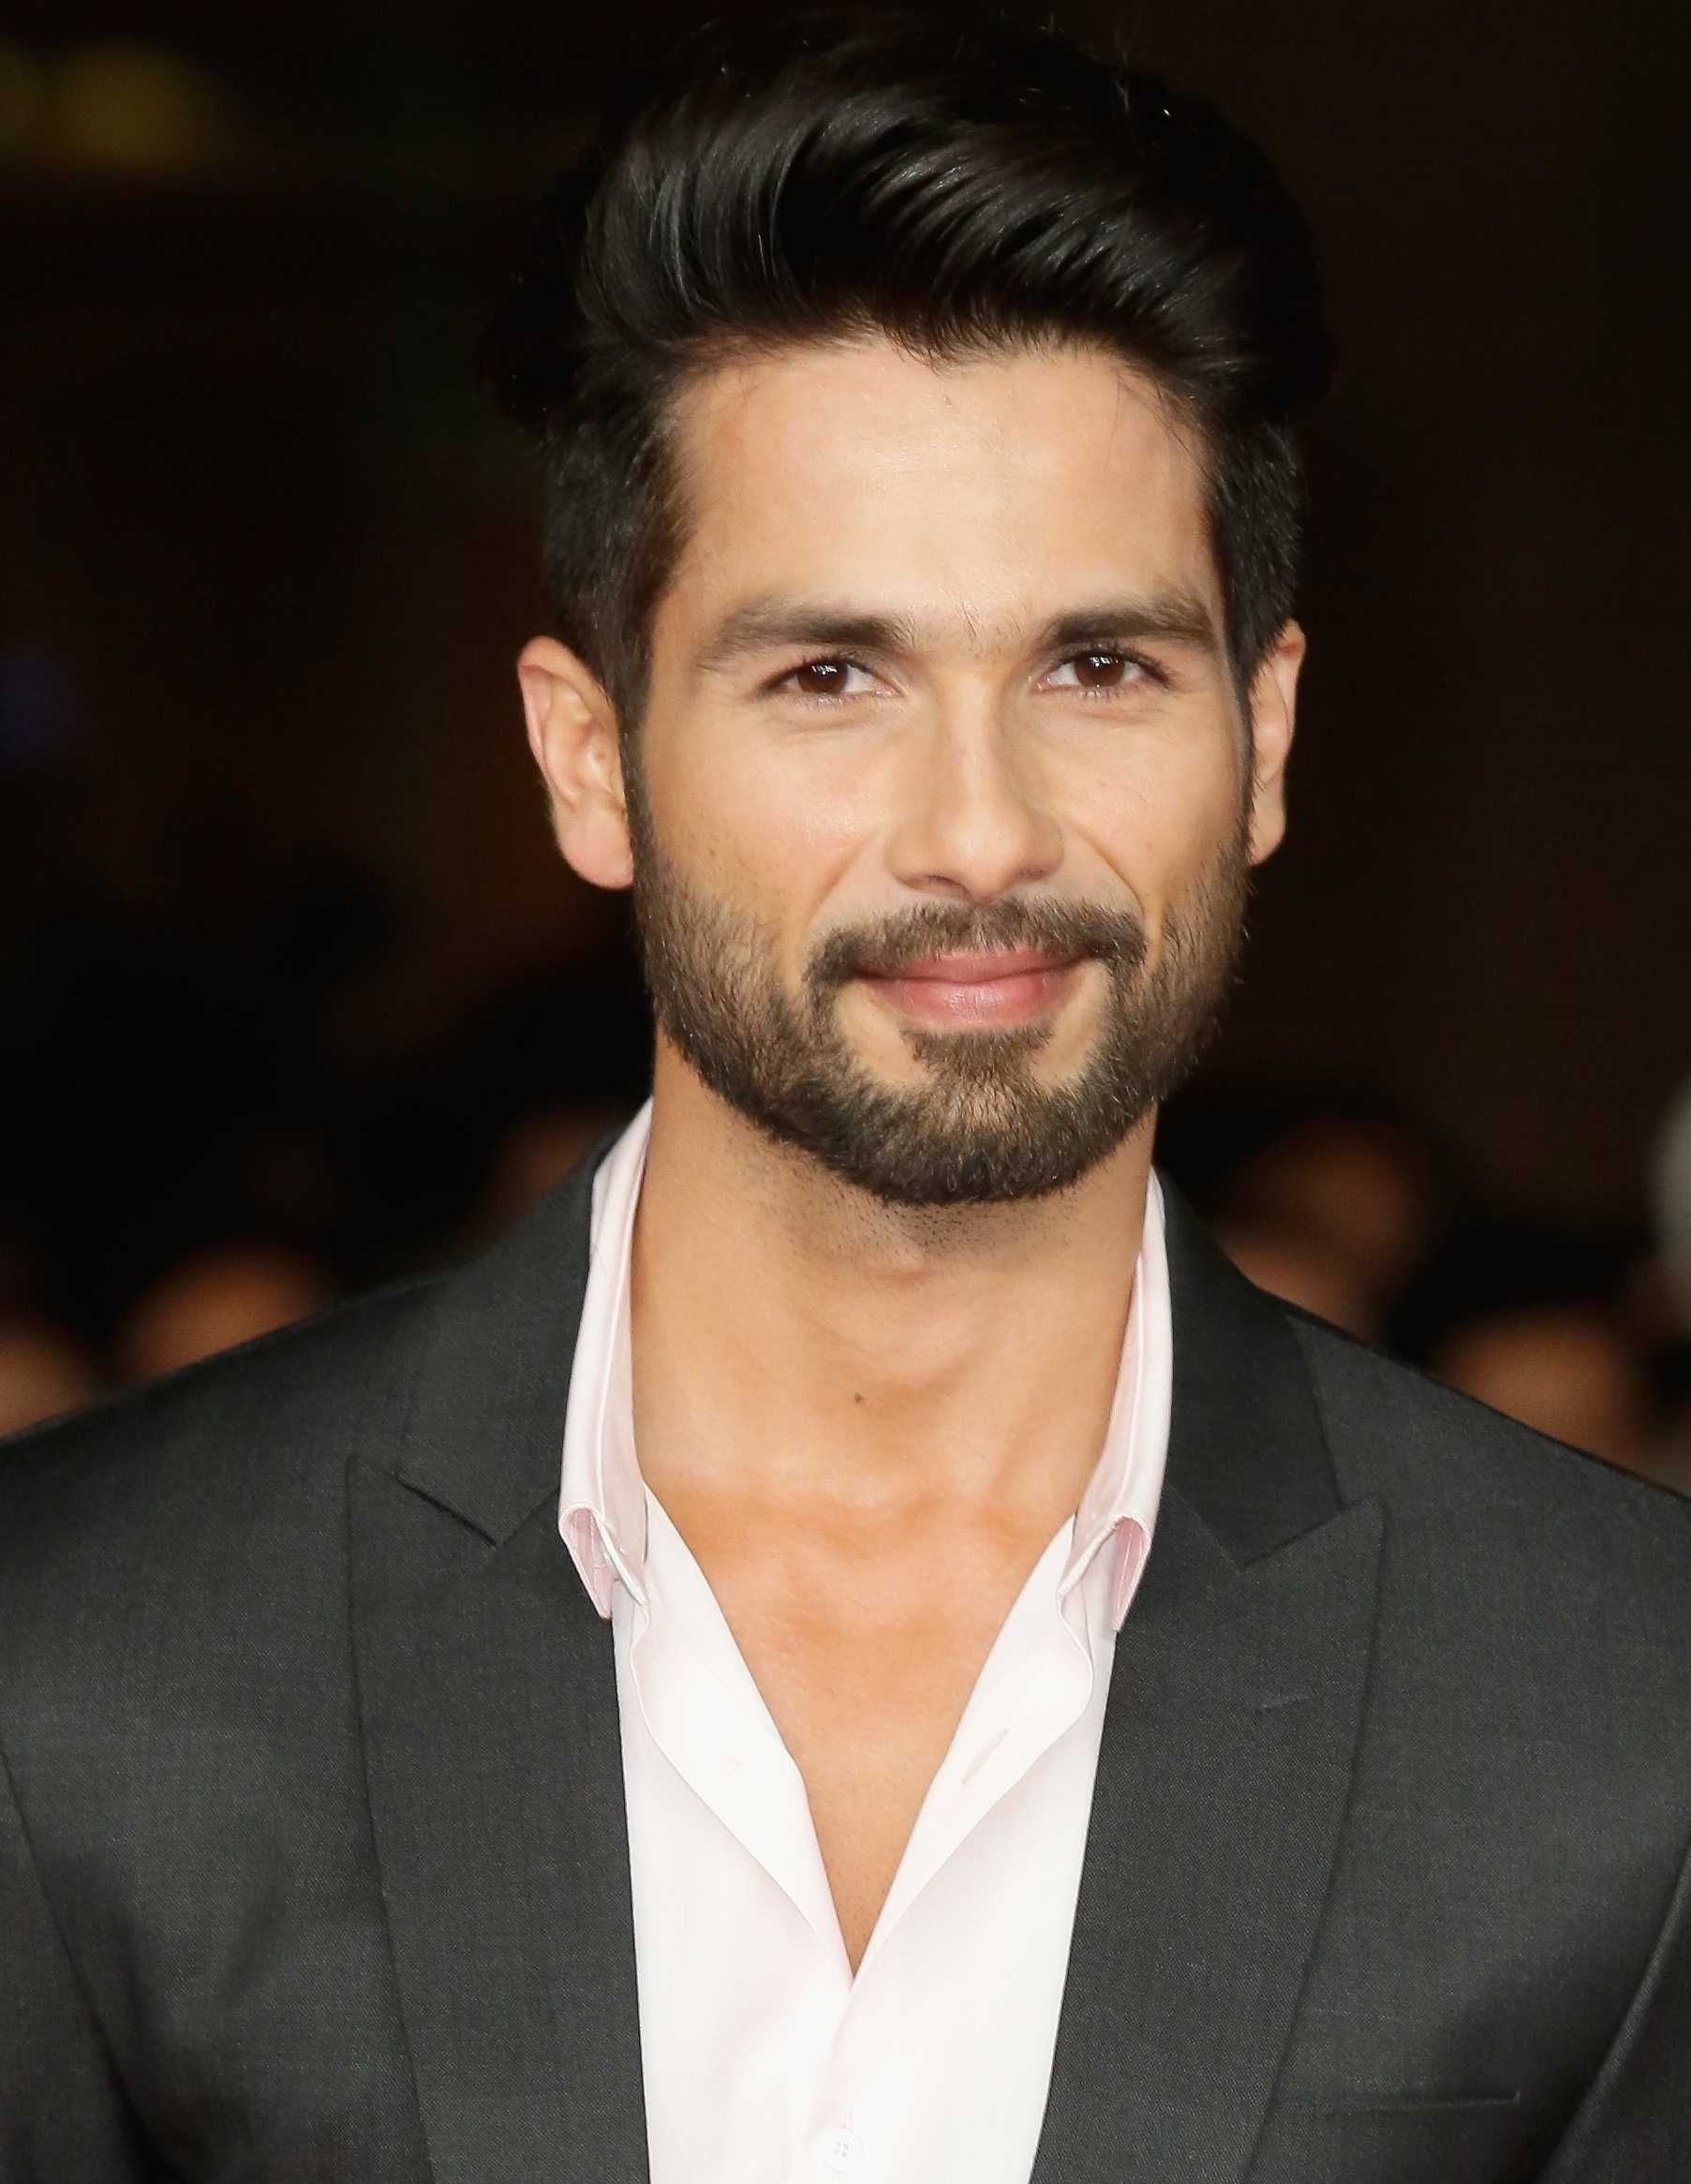 Hairstyles For Oval Face Male Indian Hairstyle Ideas